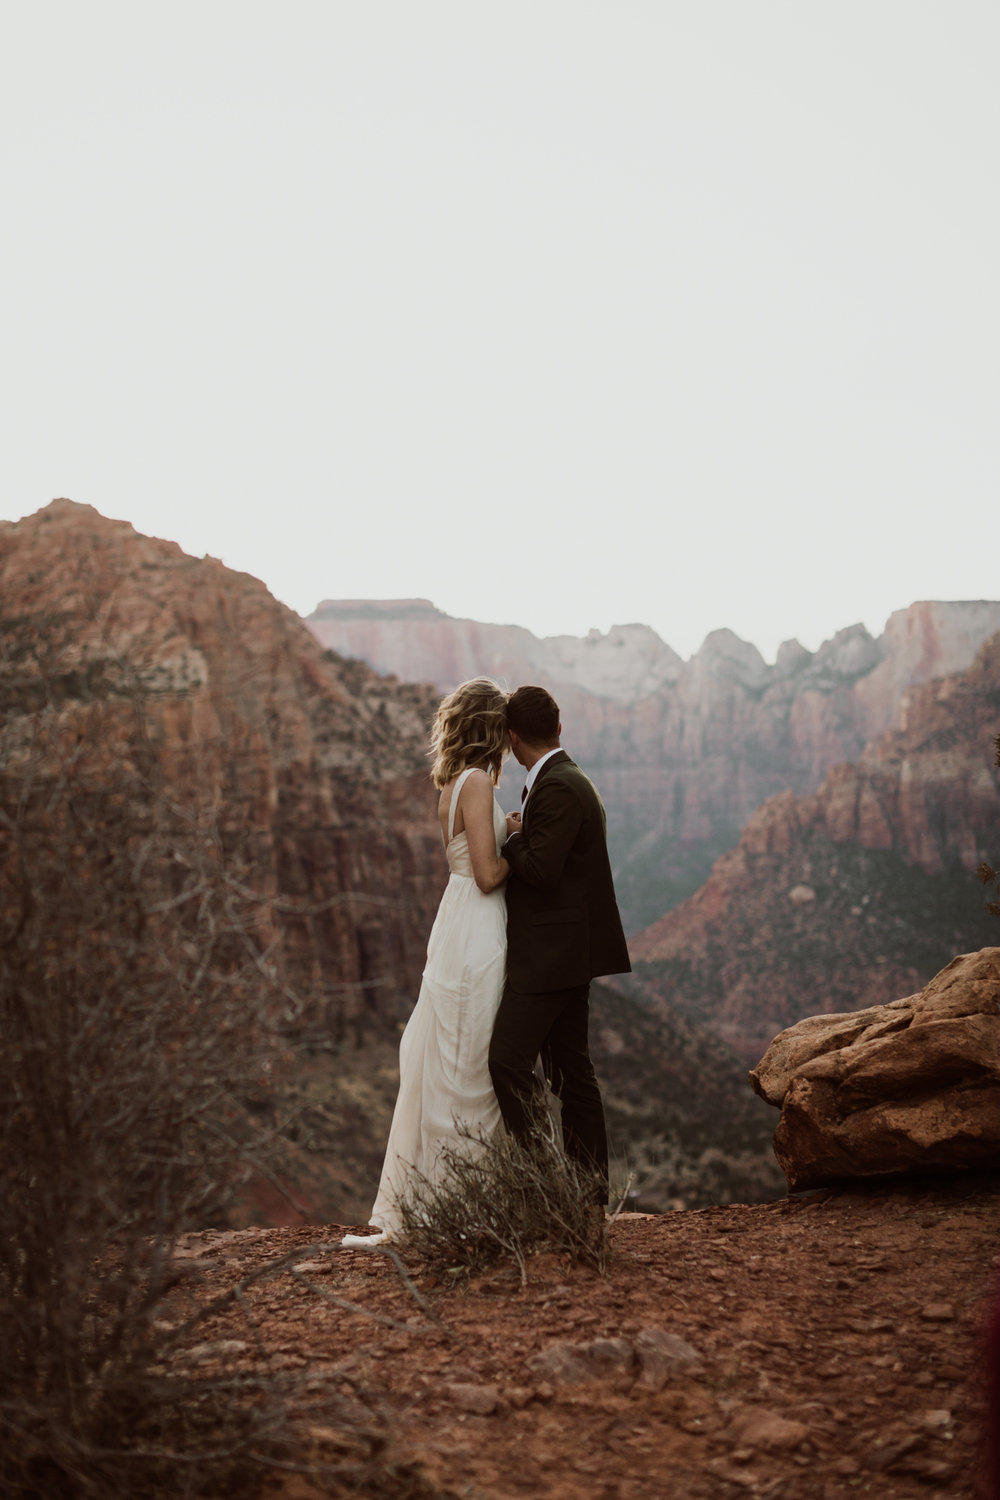 zion-national-park-wedding-135.jpg